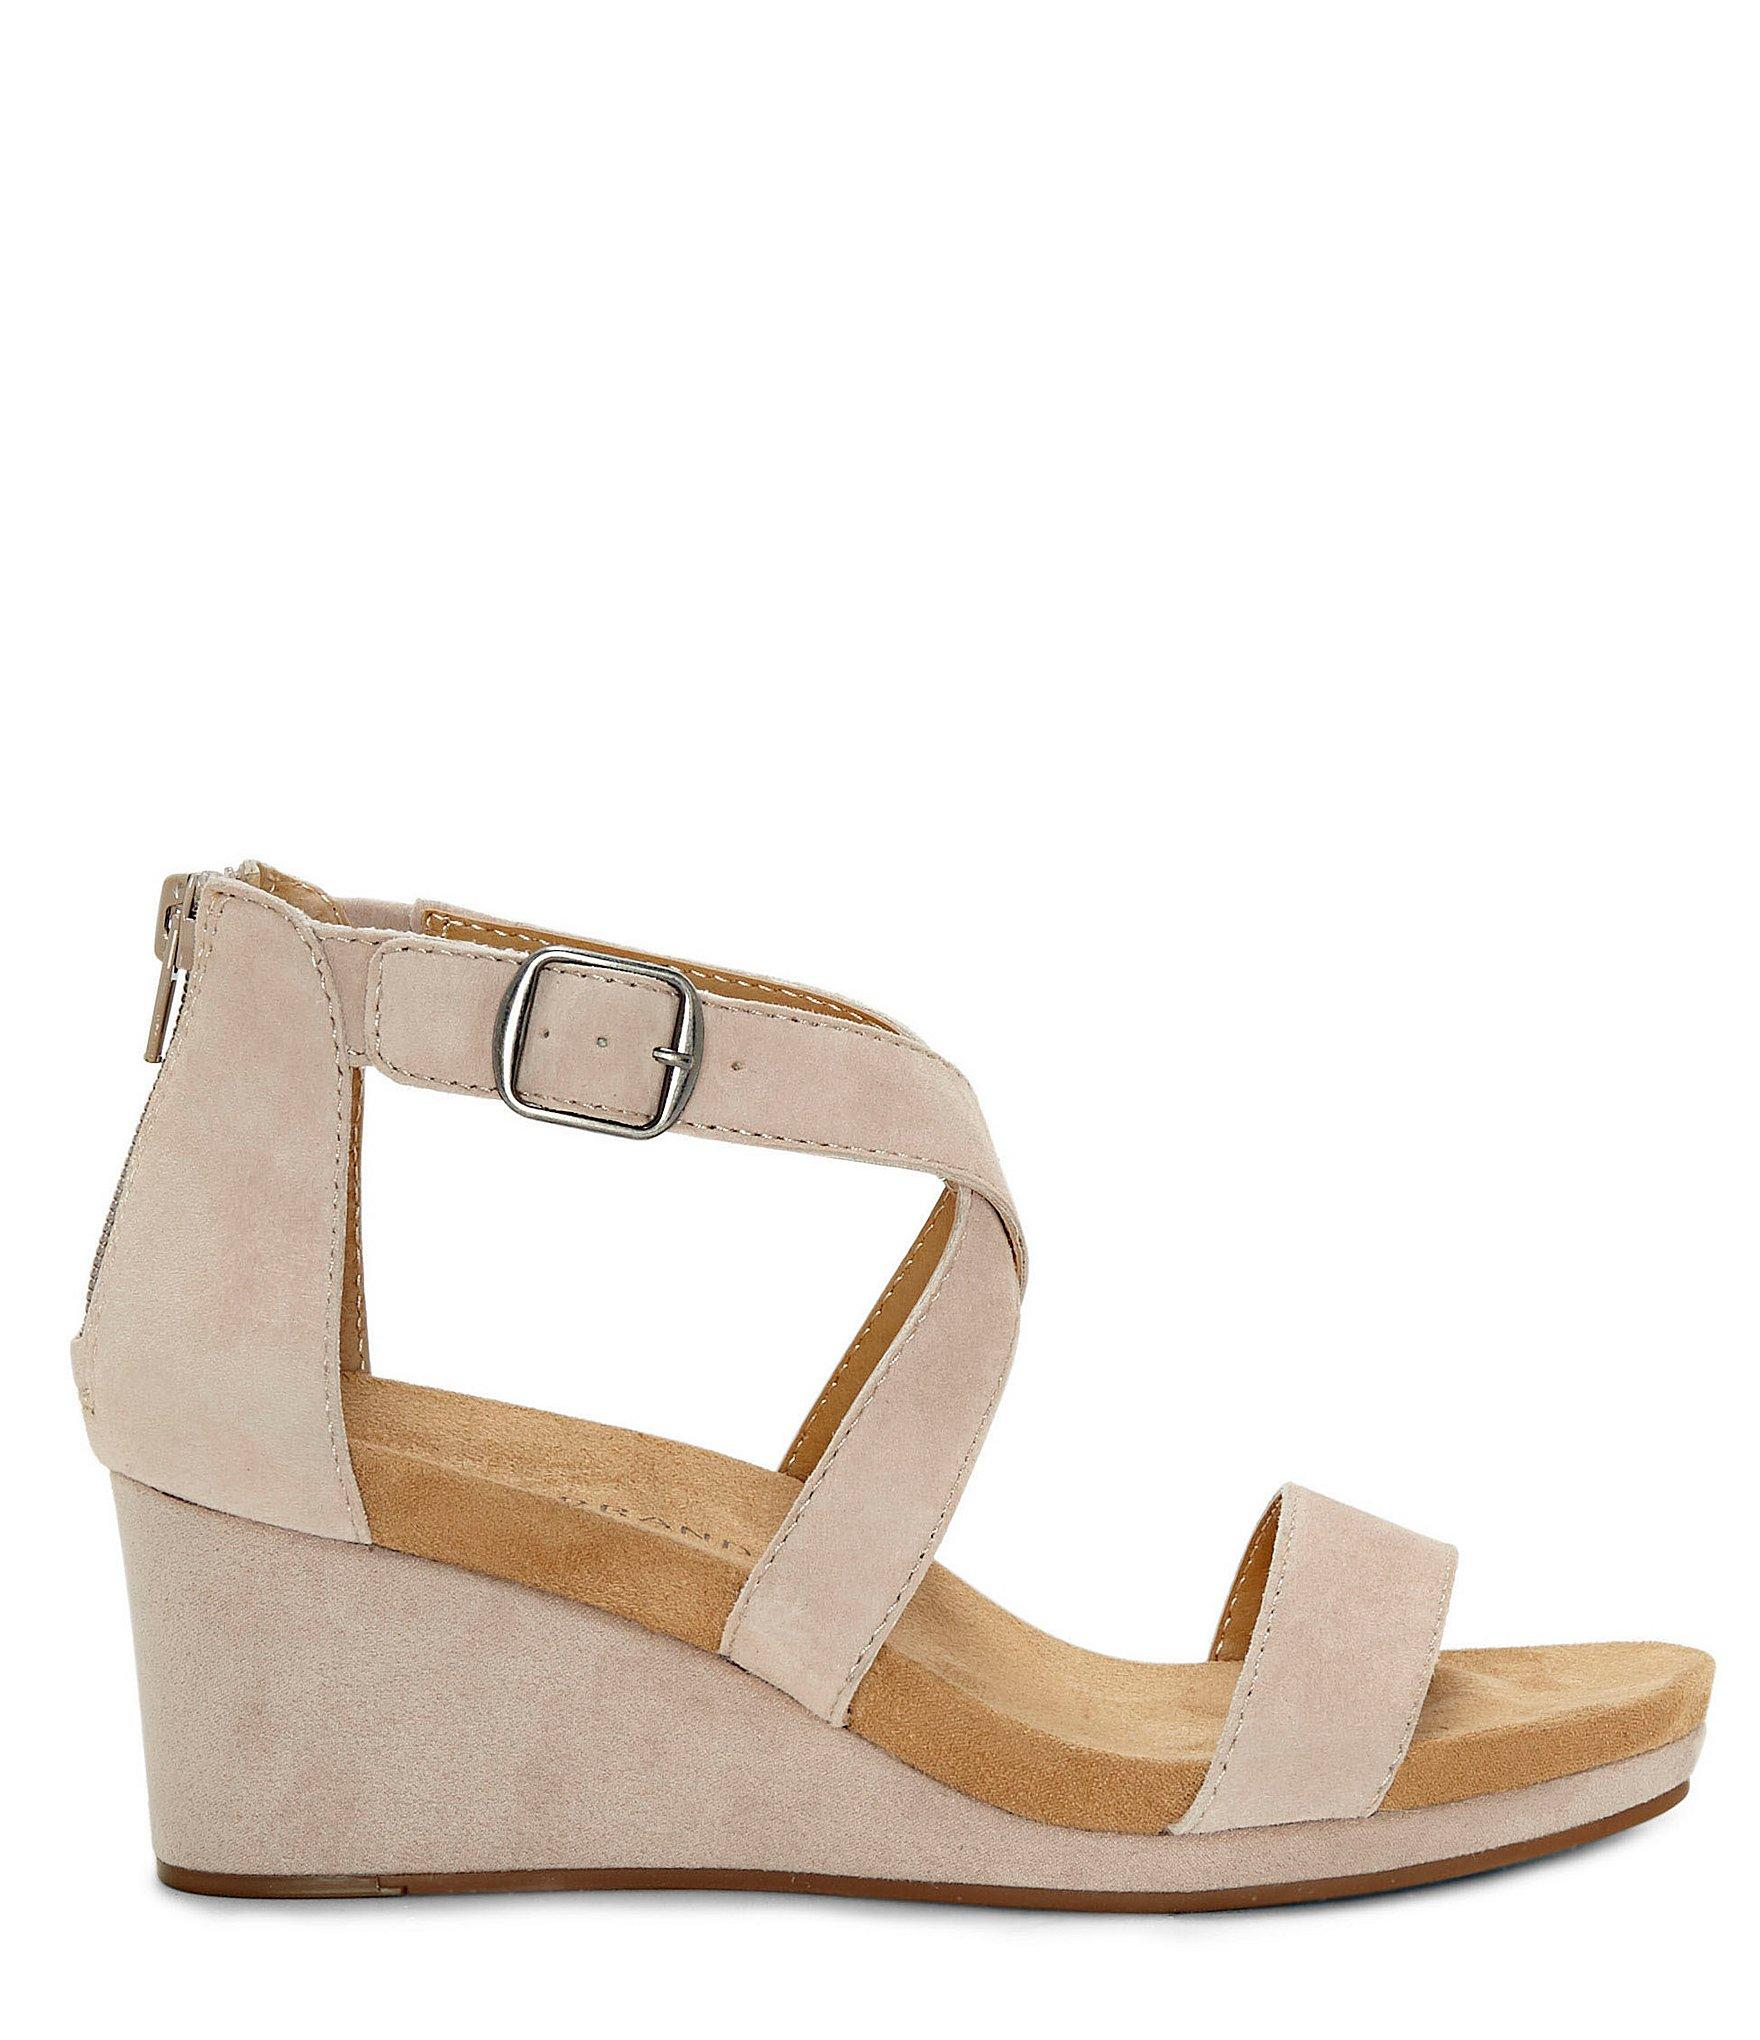 1d2c02378aa2 Lyst - Lucky Brand Kenadee Suede Wedge Sandals in Brown - Save 40%